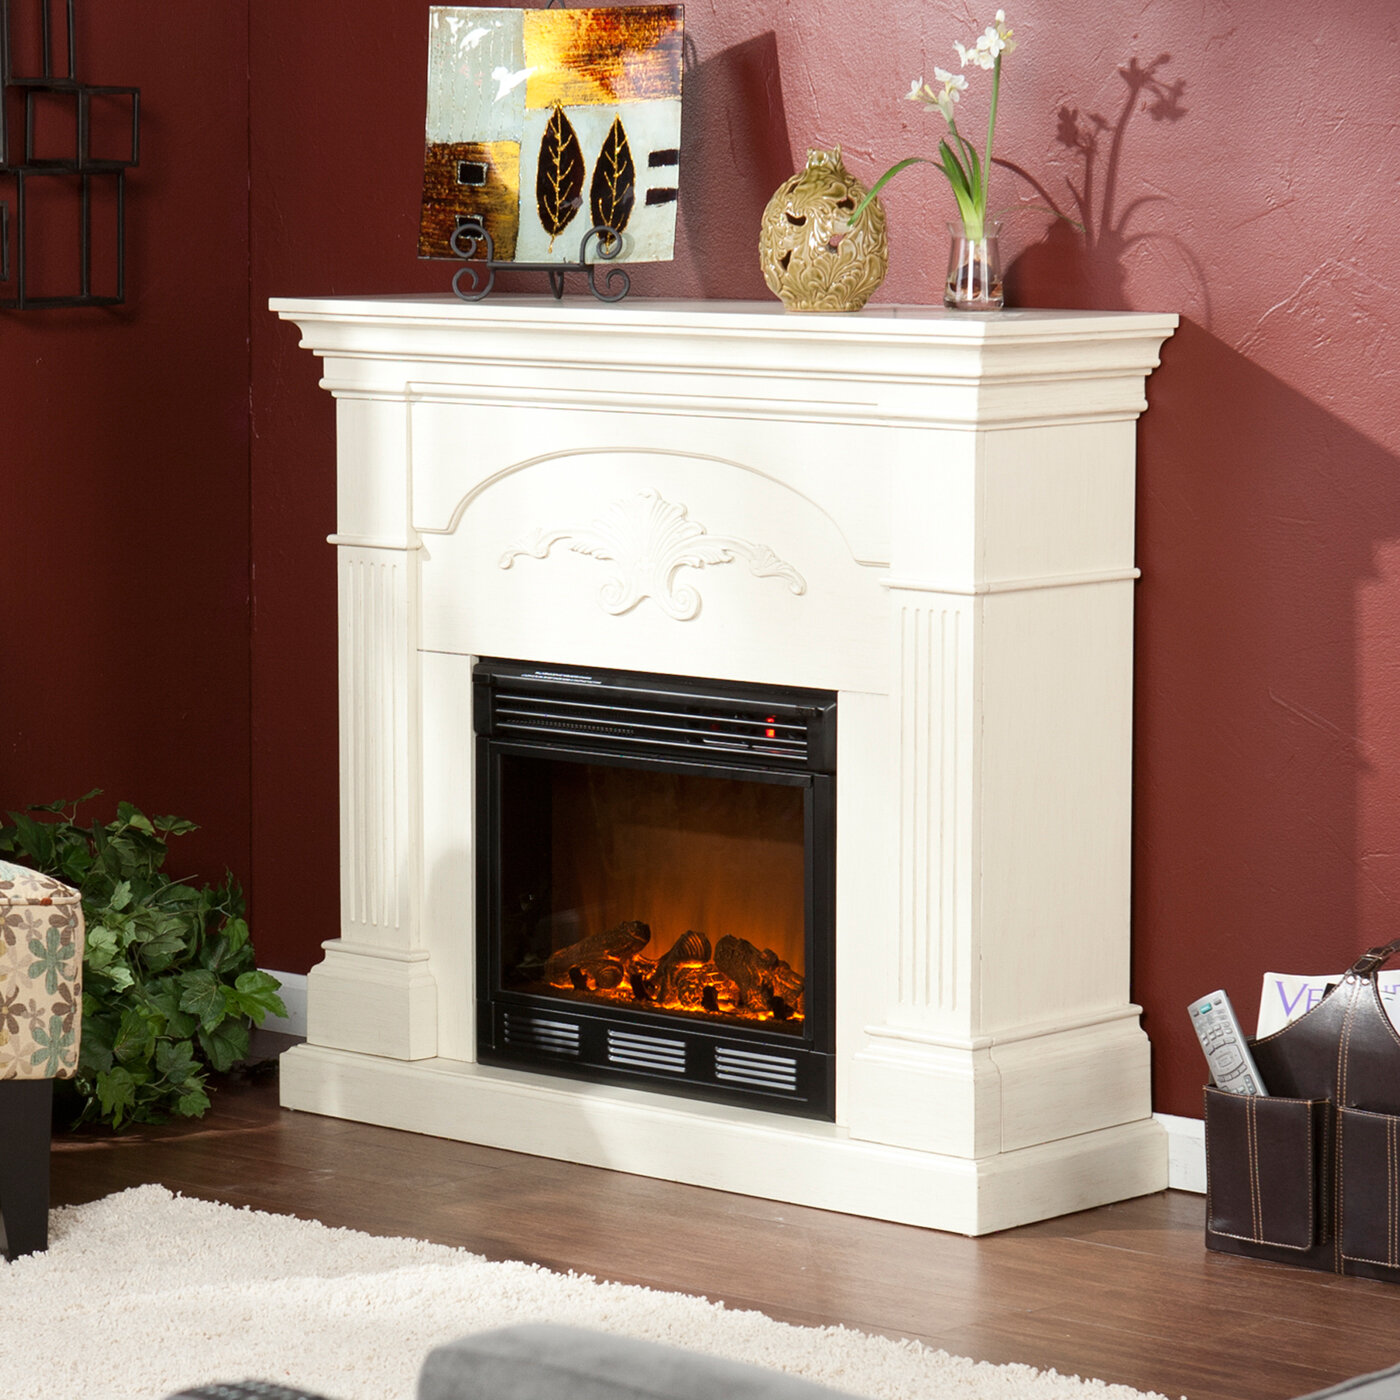 design pictures inspiration fireplace plans mantel charming